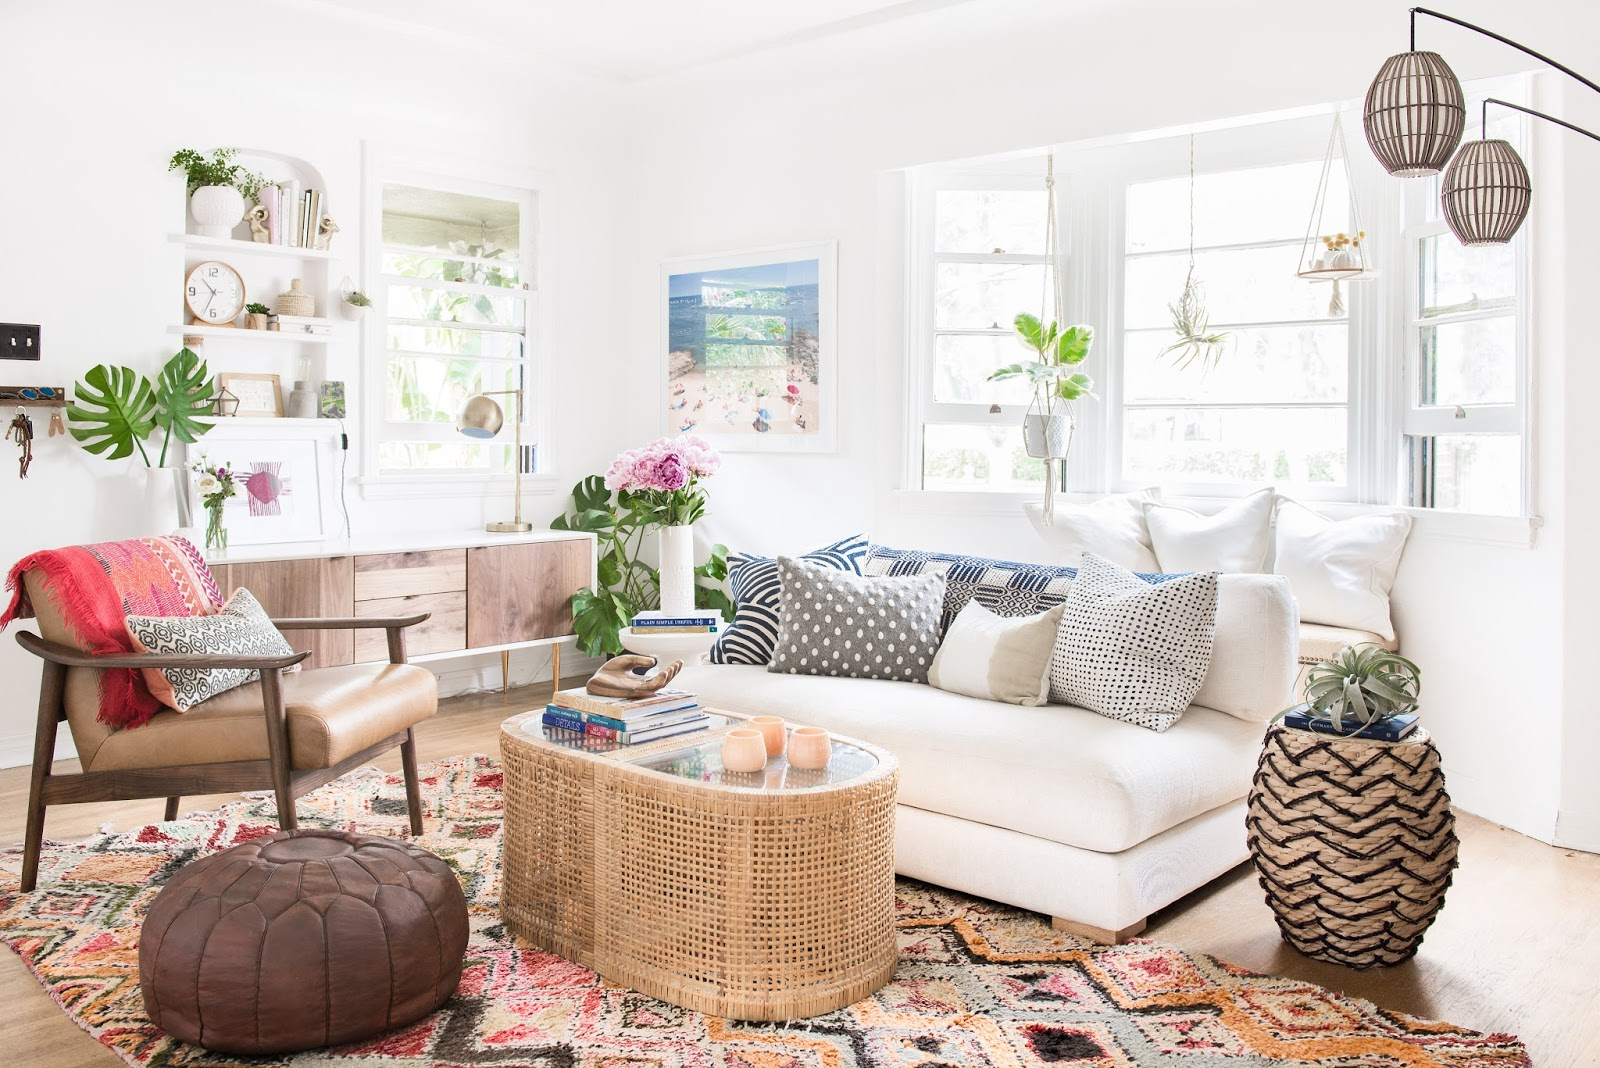 Boho Beach Bungalow: My LA Home Tour: The Boho Beach Bungalow